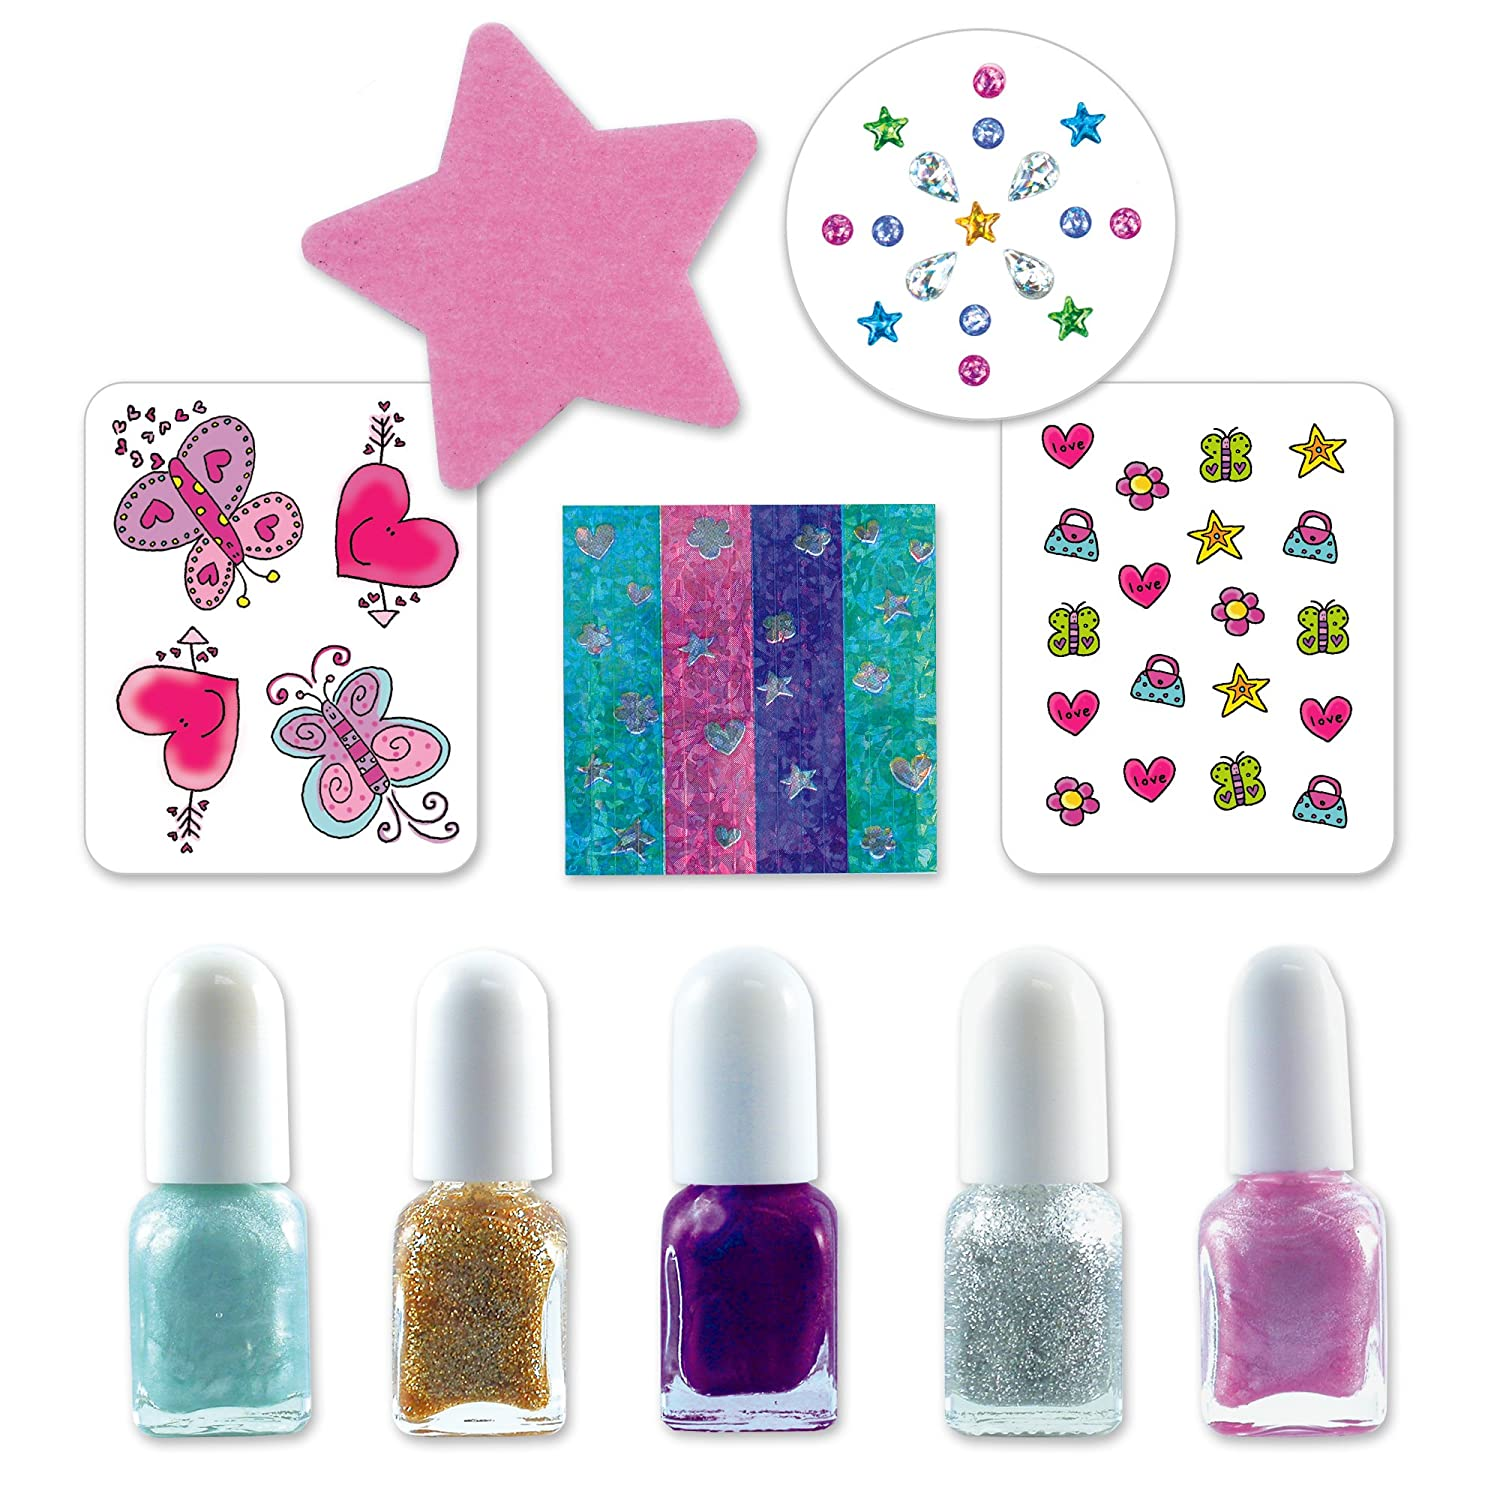 Galt Toys Nail Art Kit: Amazon.co.uk: Toys & Games